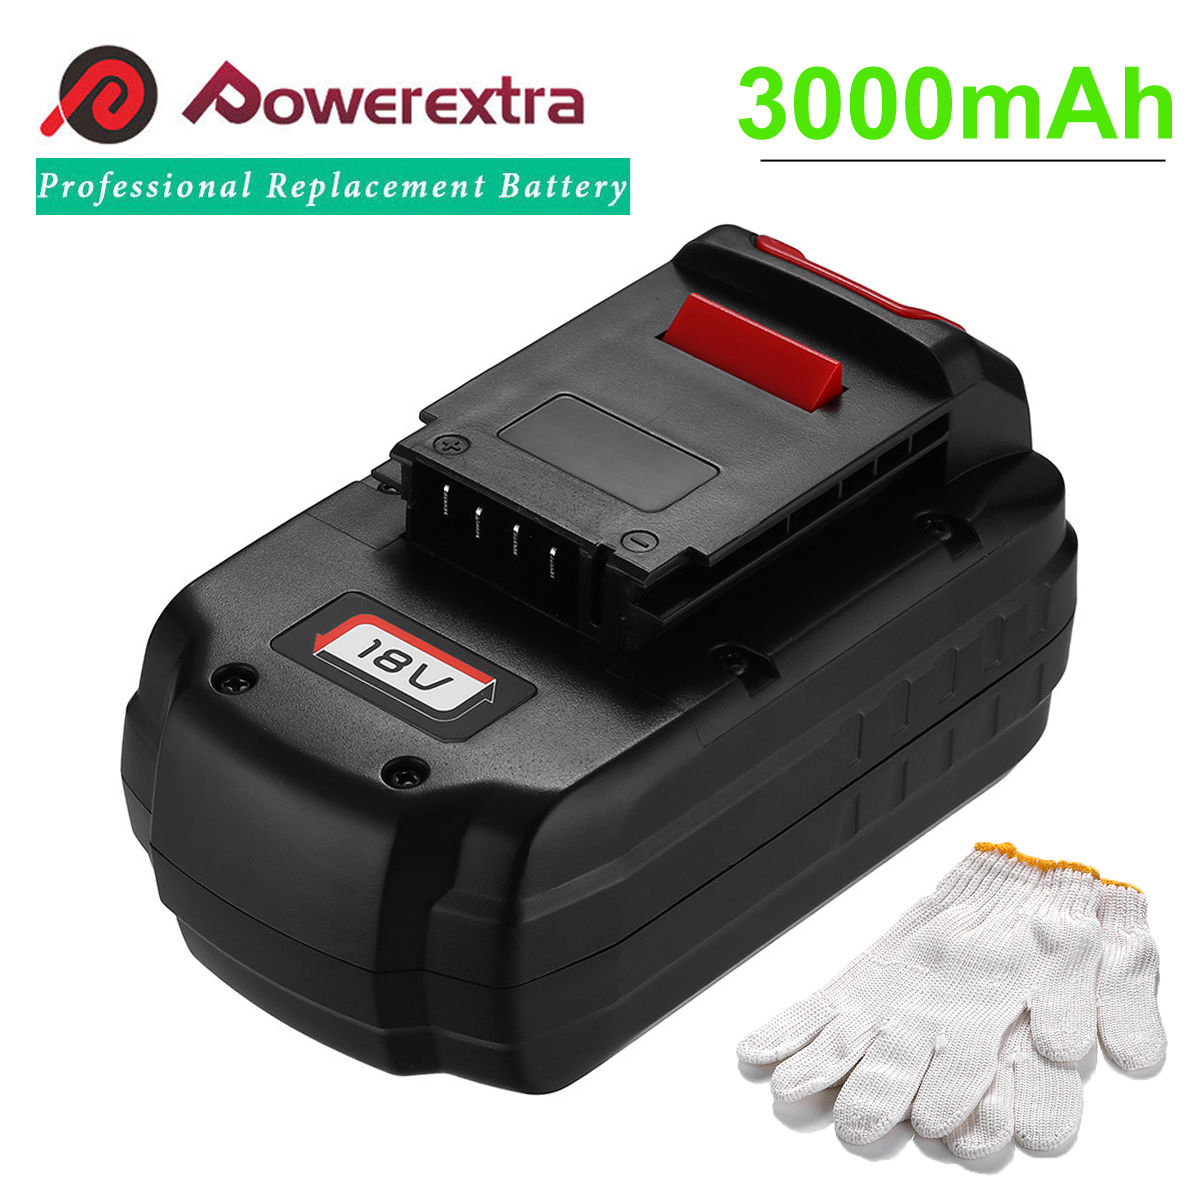 Powerextra 3000mAh 18V Replacement Battery for Porter Cable PC18B Power Tools Ni-CD... by